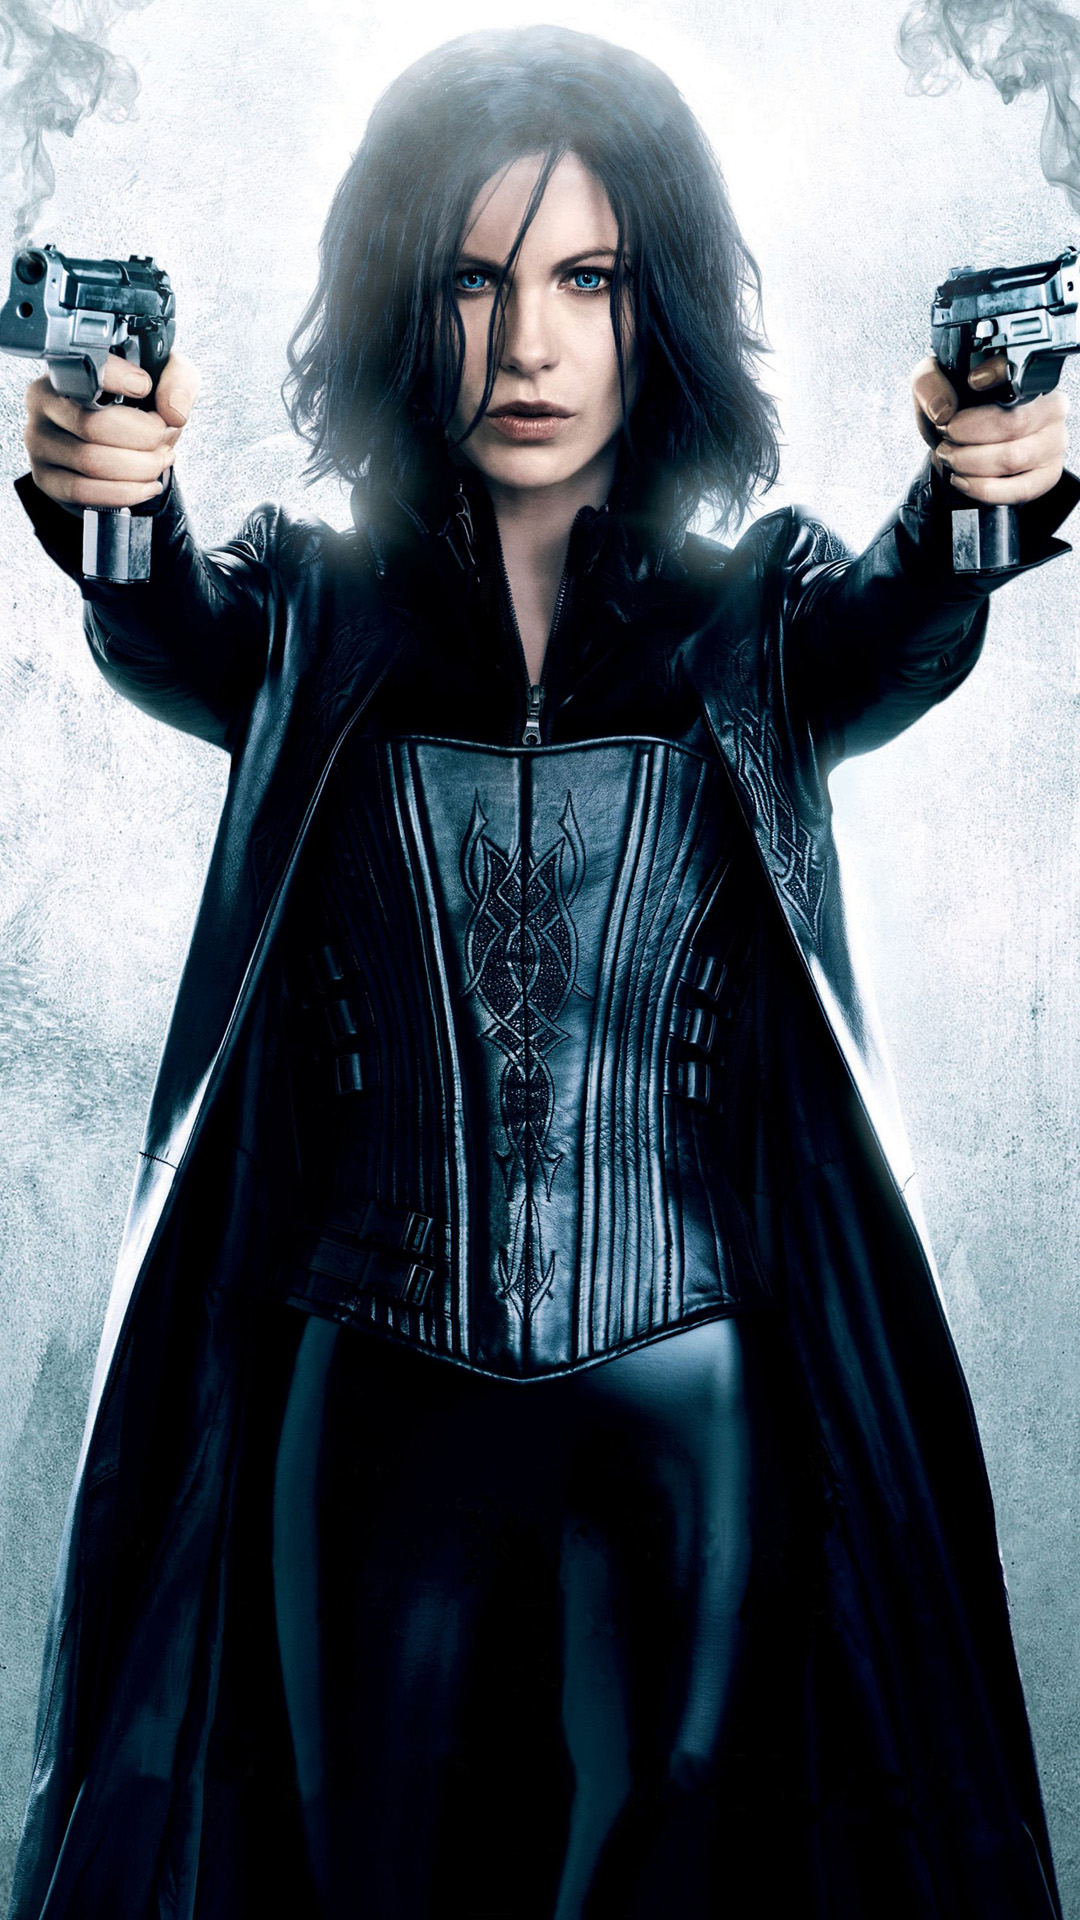 Underworld Awakening   Best htc one wallpapers and easy to 1080x1920